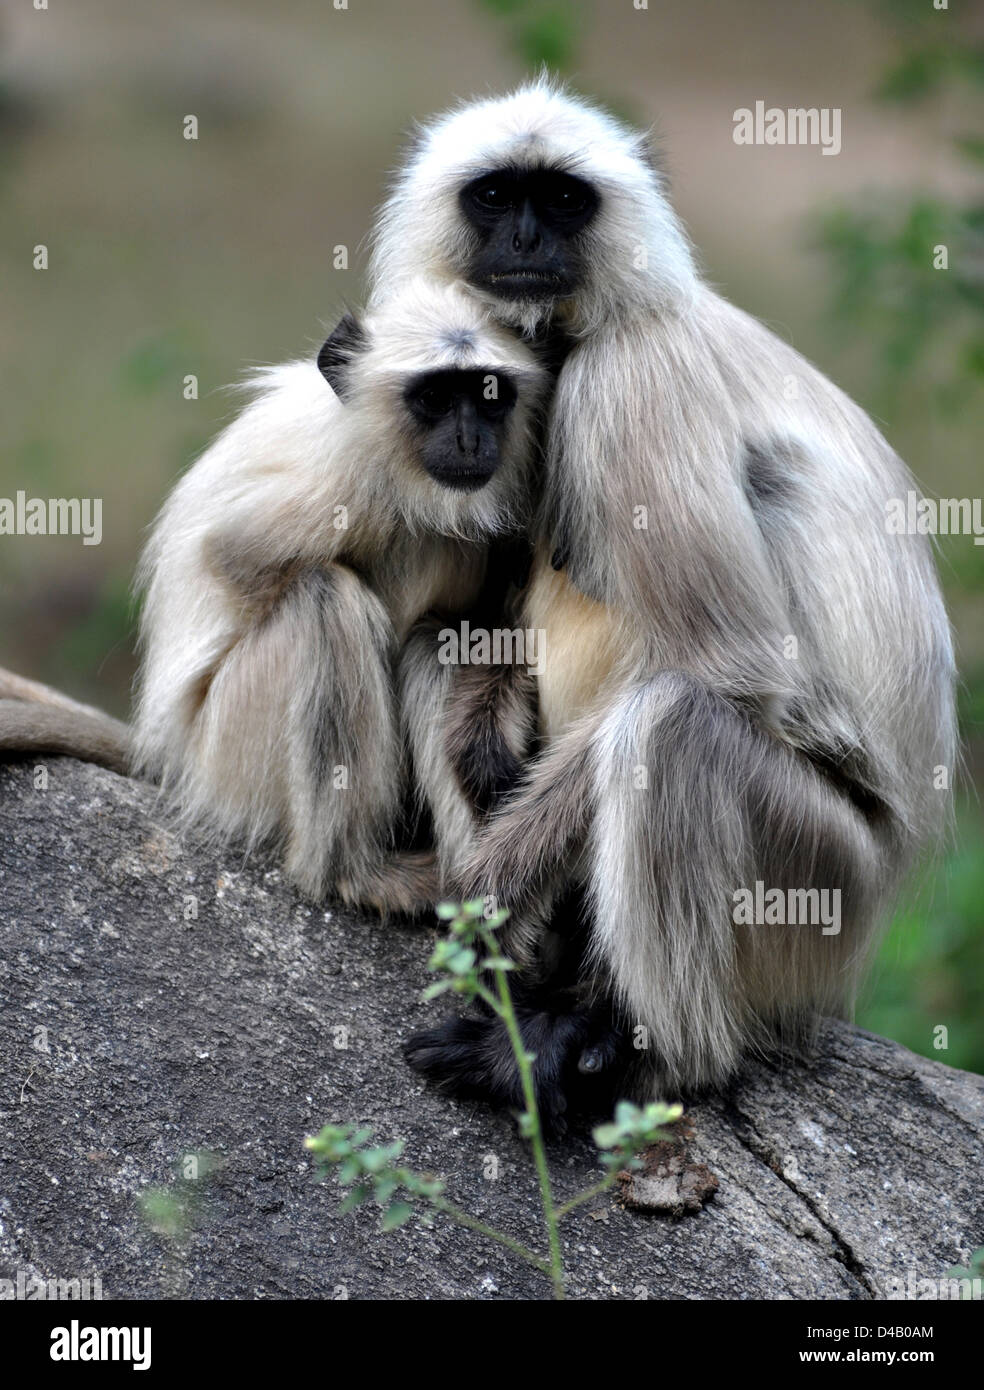 Tufted gray langur (Semnopithecus priam) is an Old World monkey, one of species of langurs, - Stock Image